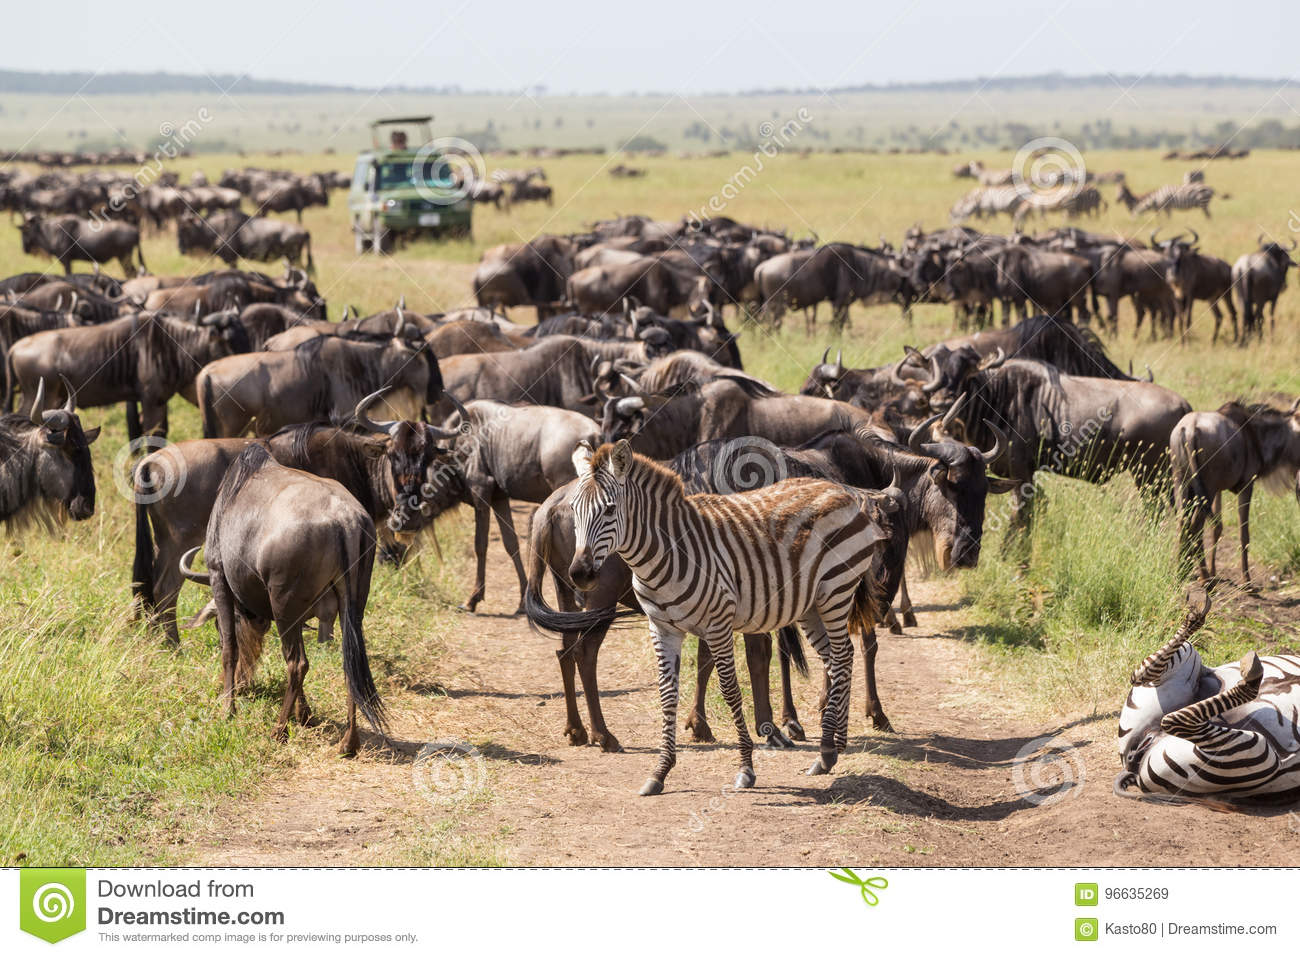 Wildebeests and Zebras grazing in Serengeti National Park in Tanzania, East Africa.